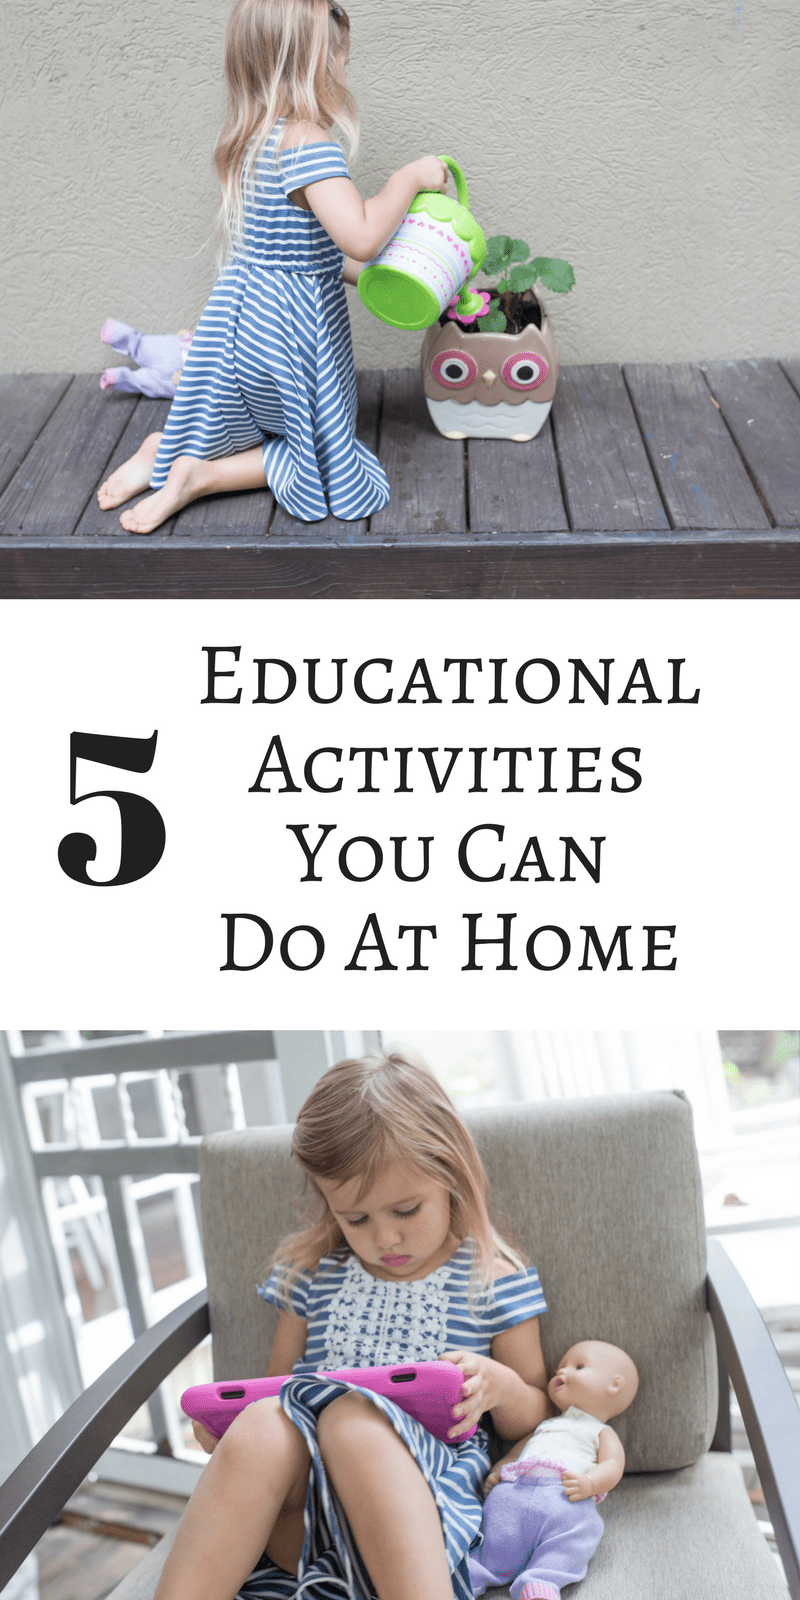 5 educational activities you can do at home